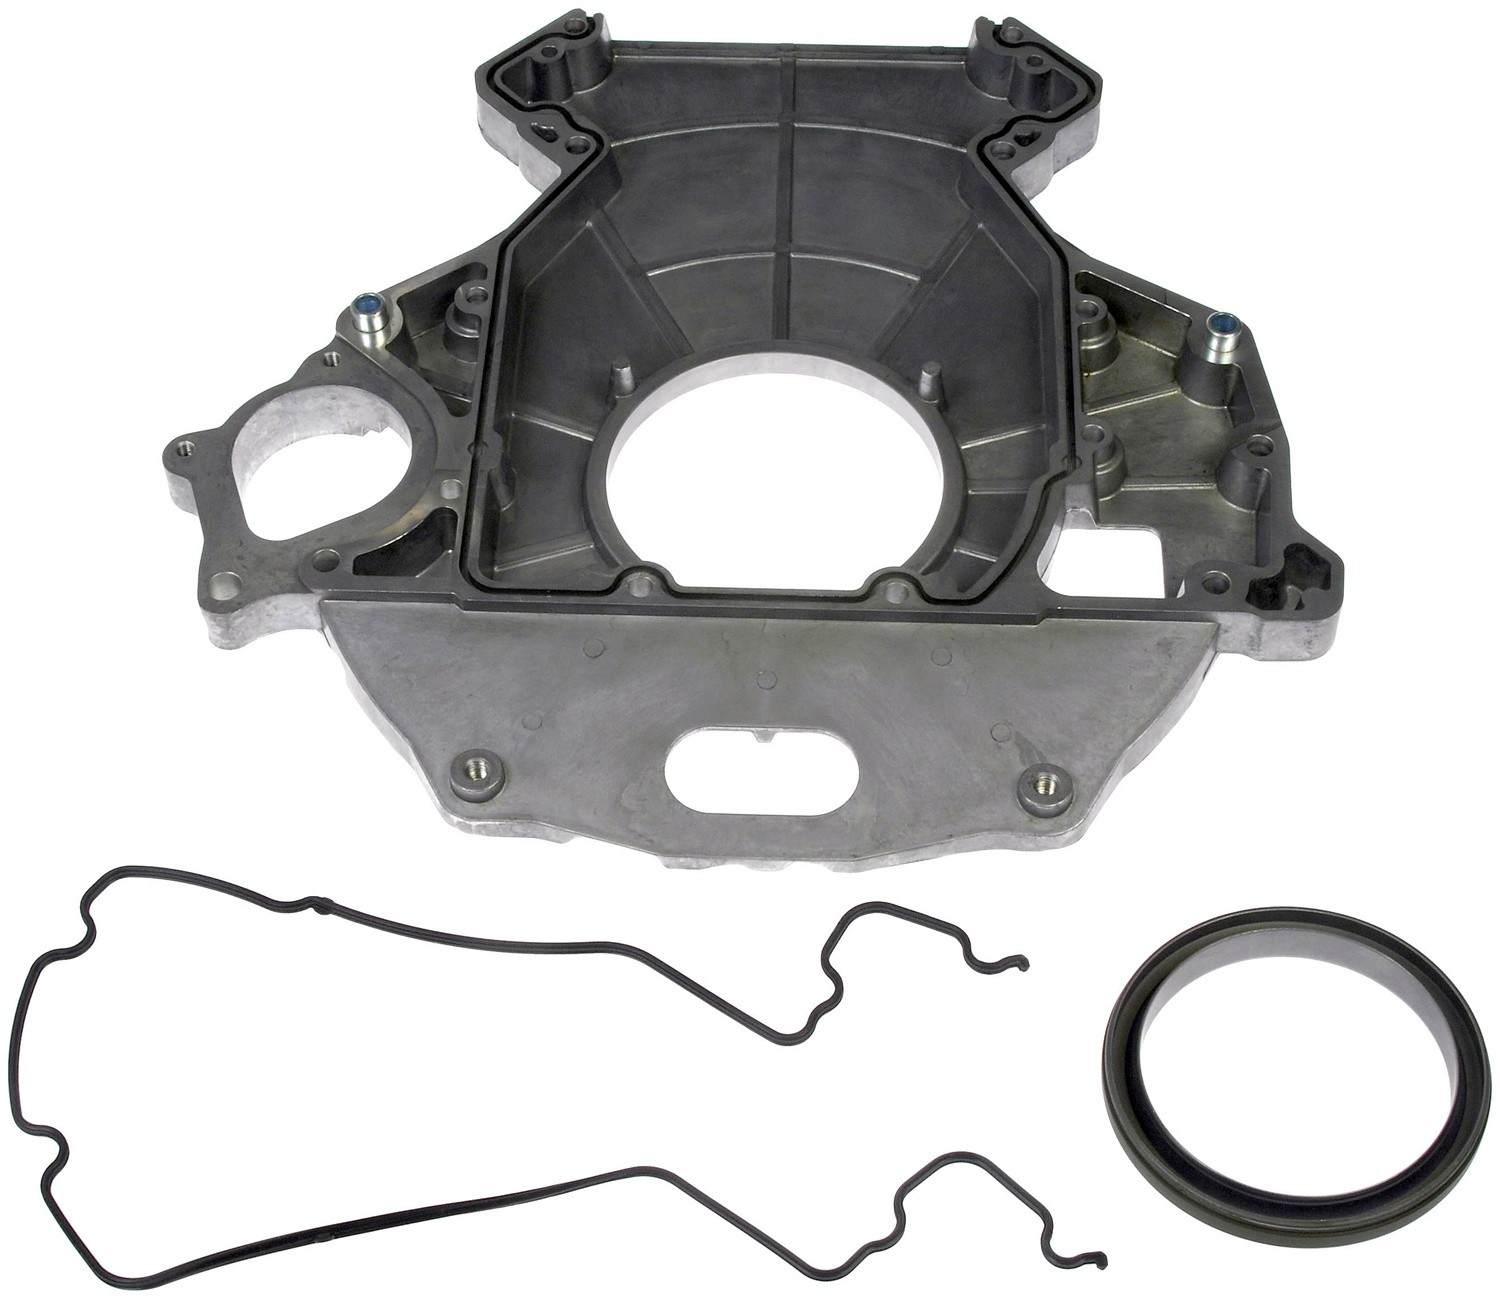 DORMAN OE SOLUTIONS - Engine Rear Main Seal Cover - DRE 635-118